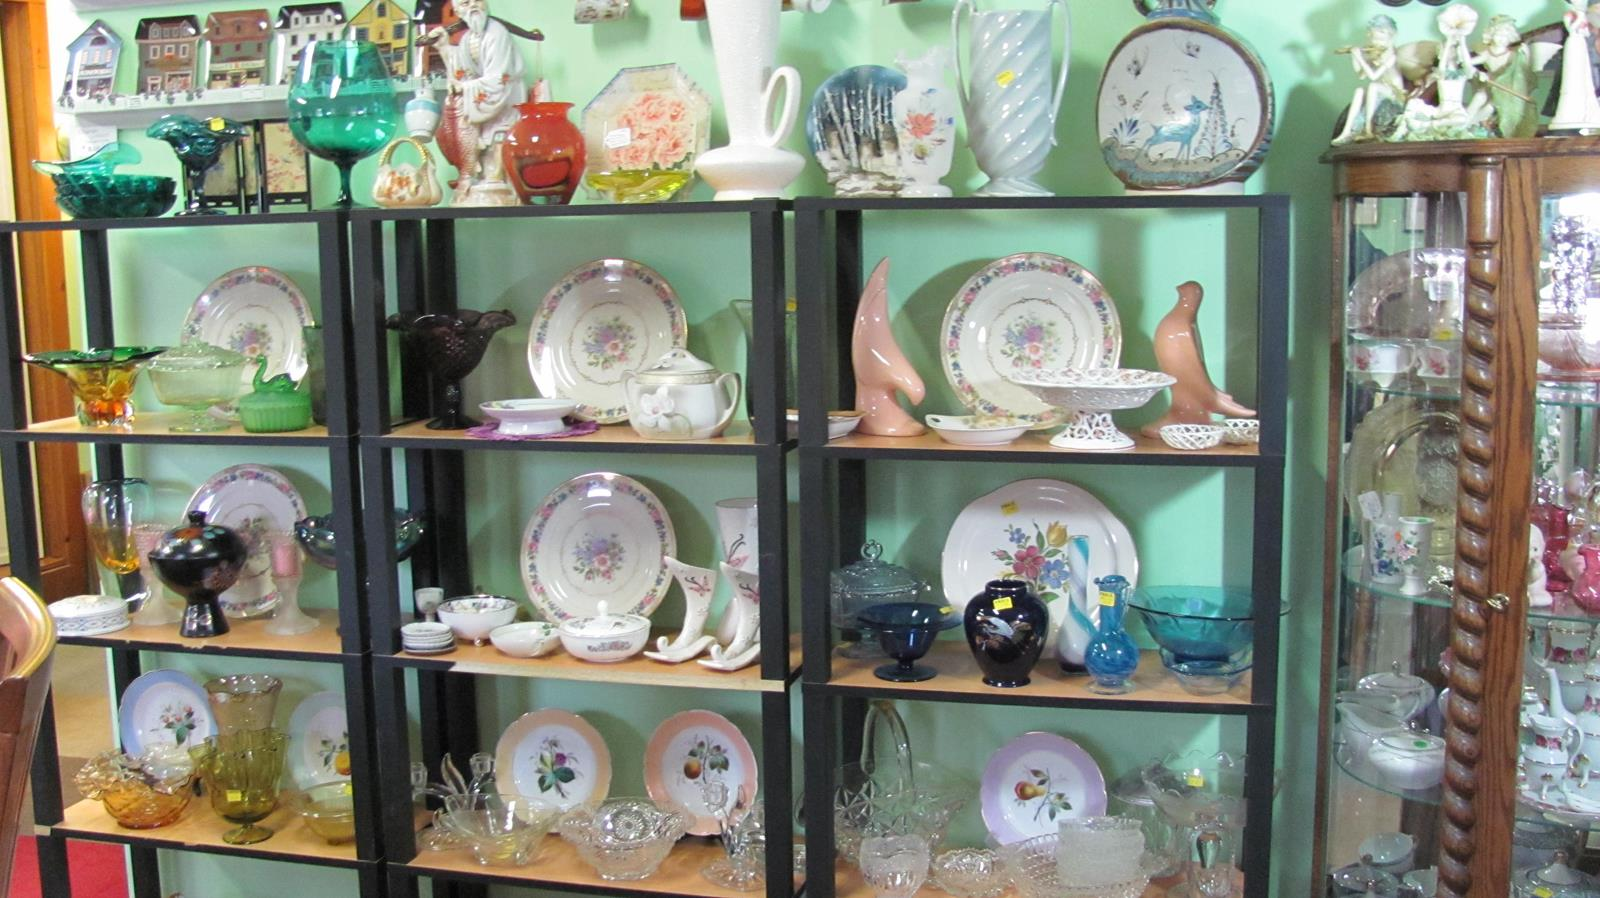 New To You Shop located with Ellies Daylilies in Unity Maine has a wide selection of collectibles and home decor